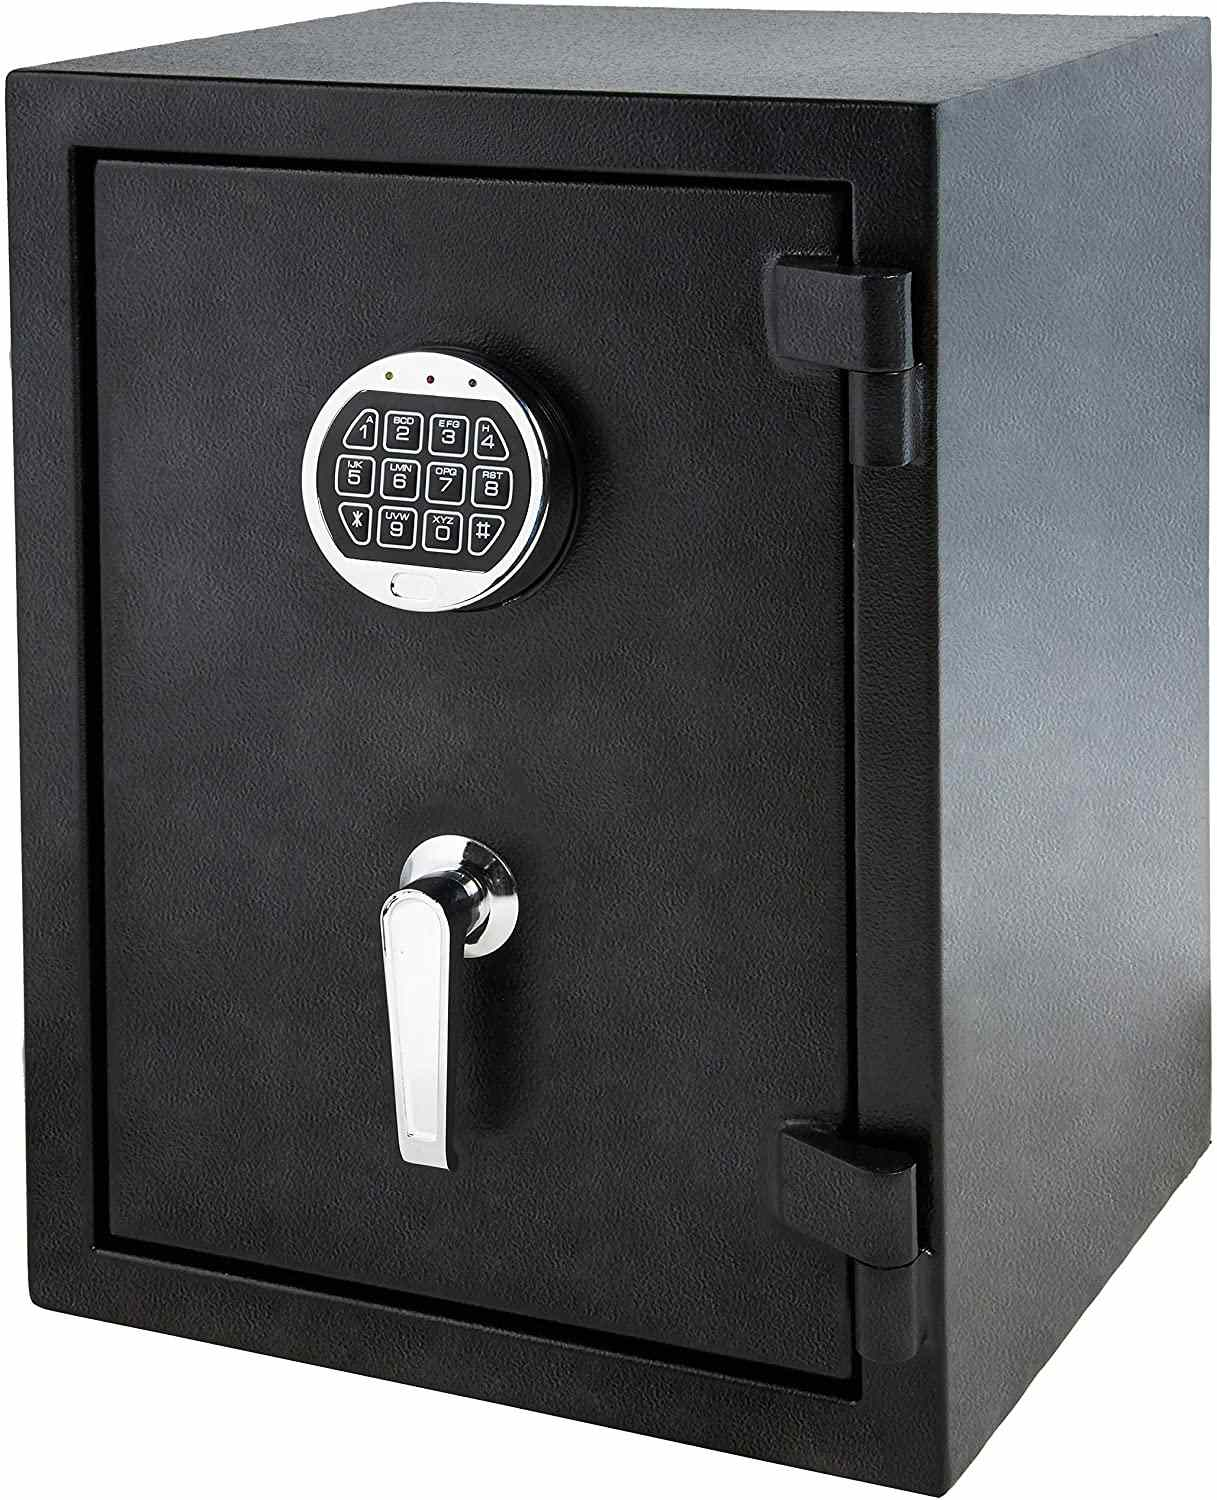 Fire Resistant Box Safe with Keypad